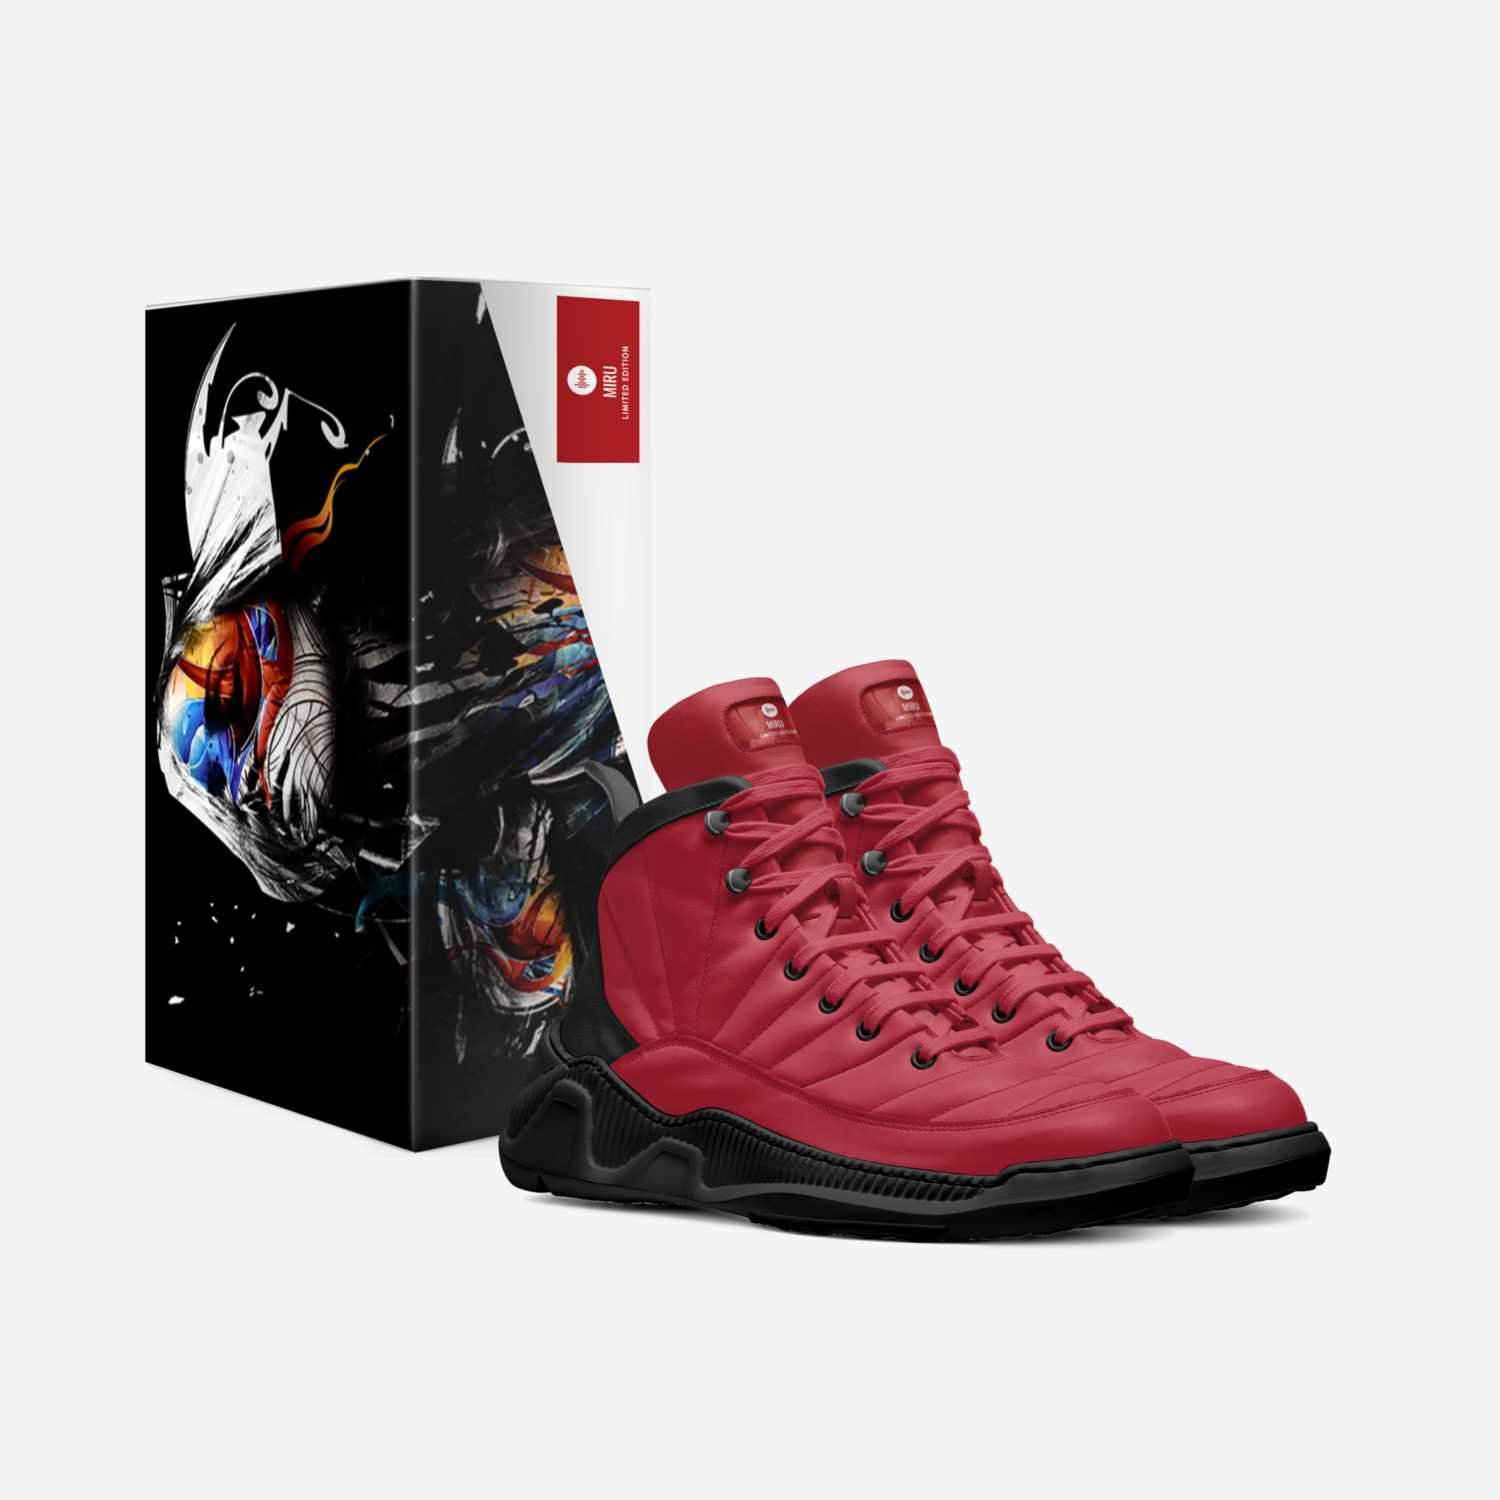 MIRU custom made in Italy shoes by Shawnkyle Kyle Thomas-brooks | Box view